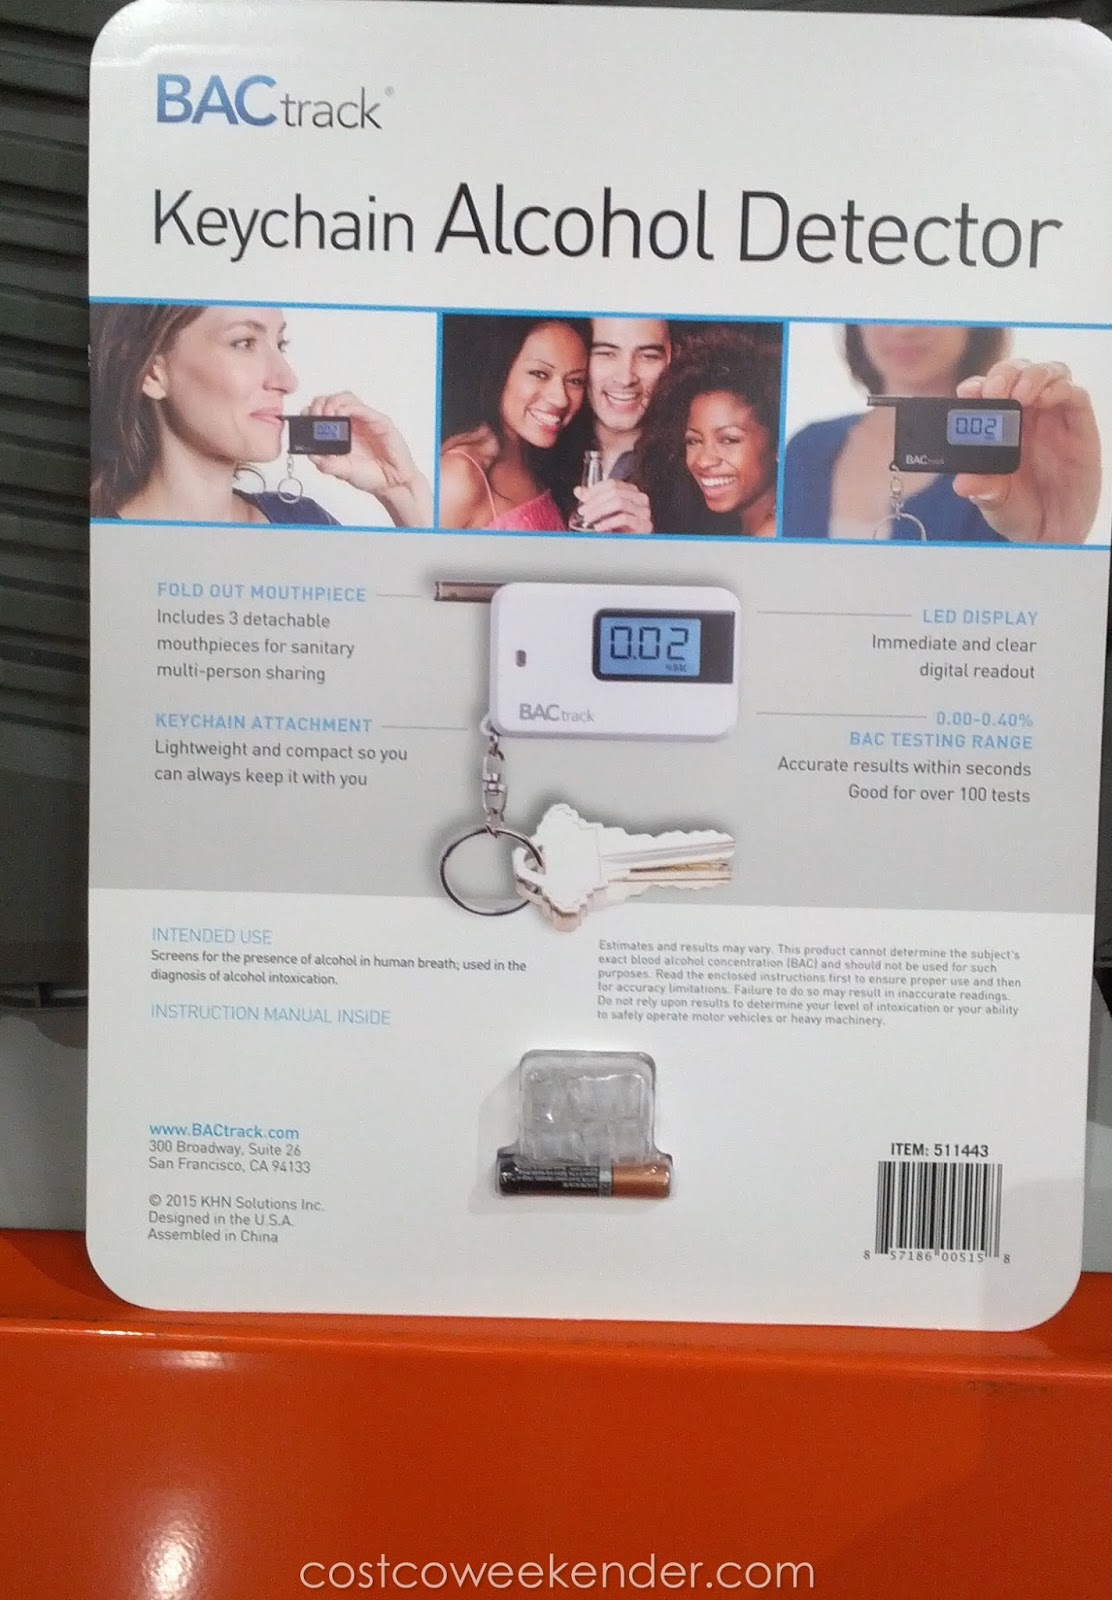 Costco 511443 - Avoid DUIs and possibly hurting someone with the BACtrack Keychain Alcohol Detector